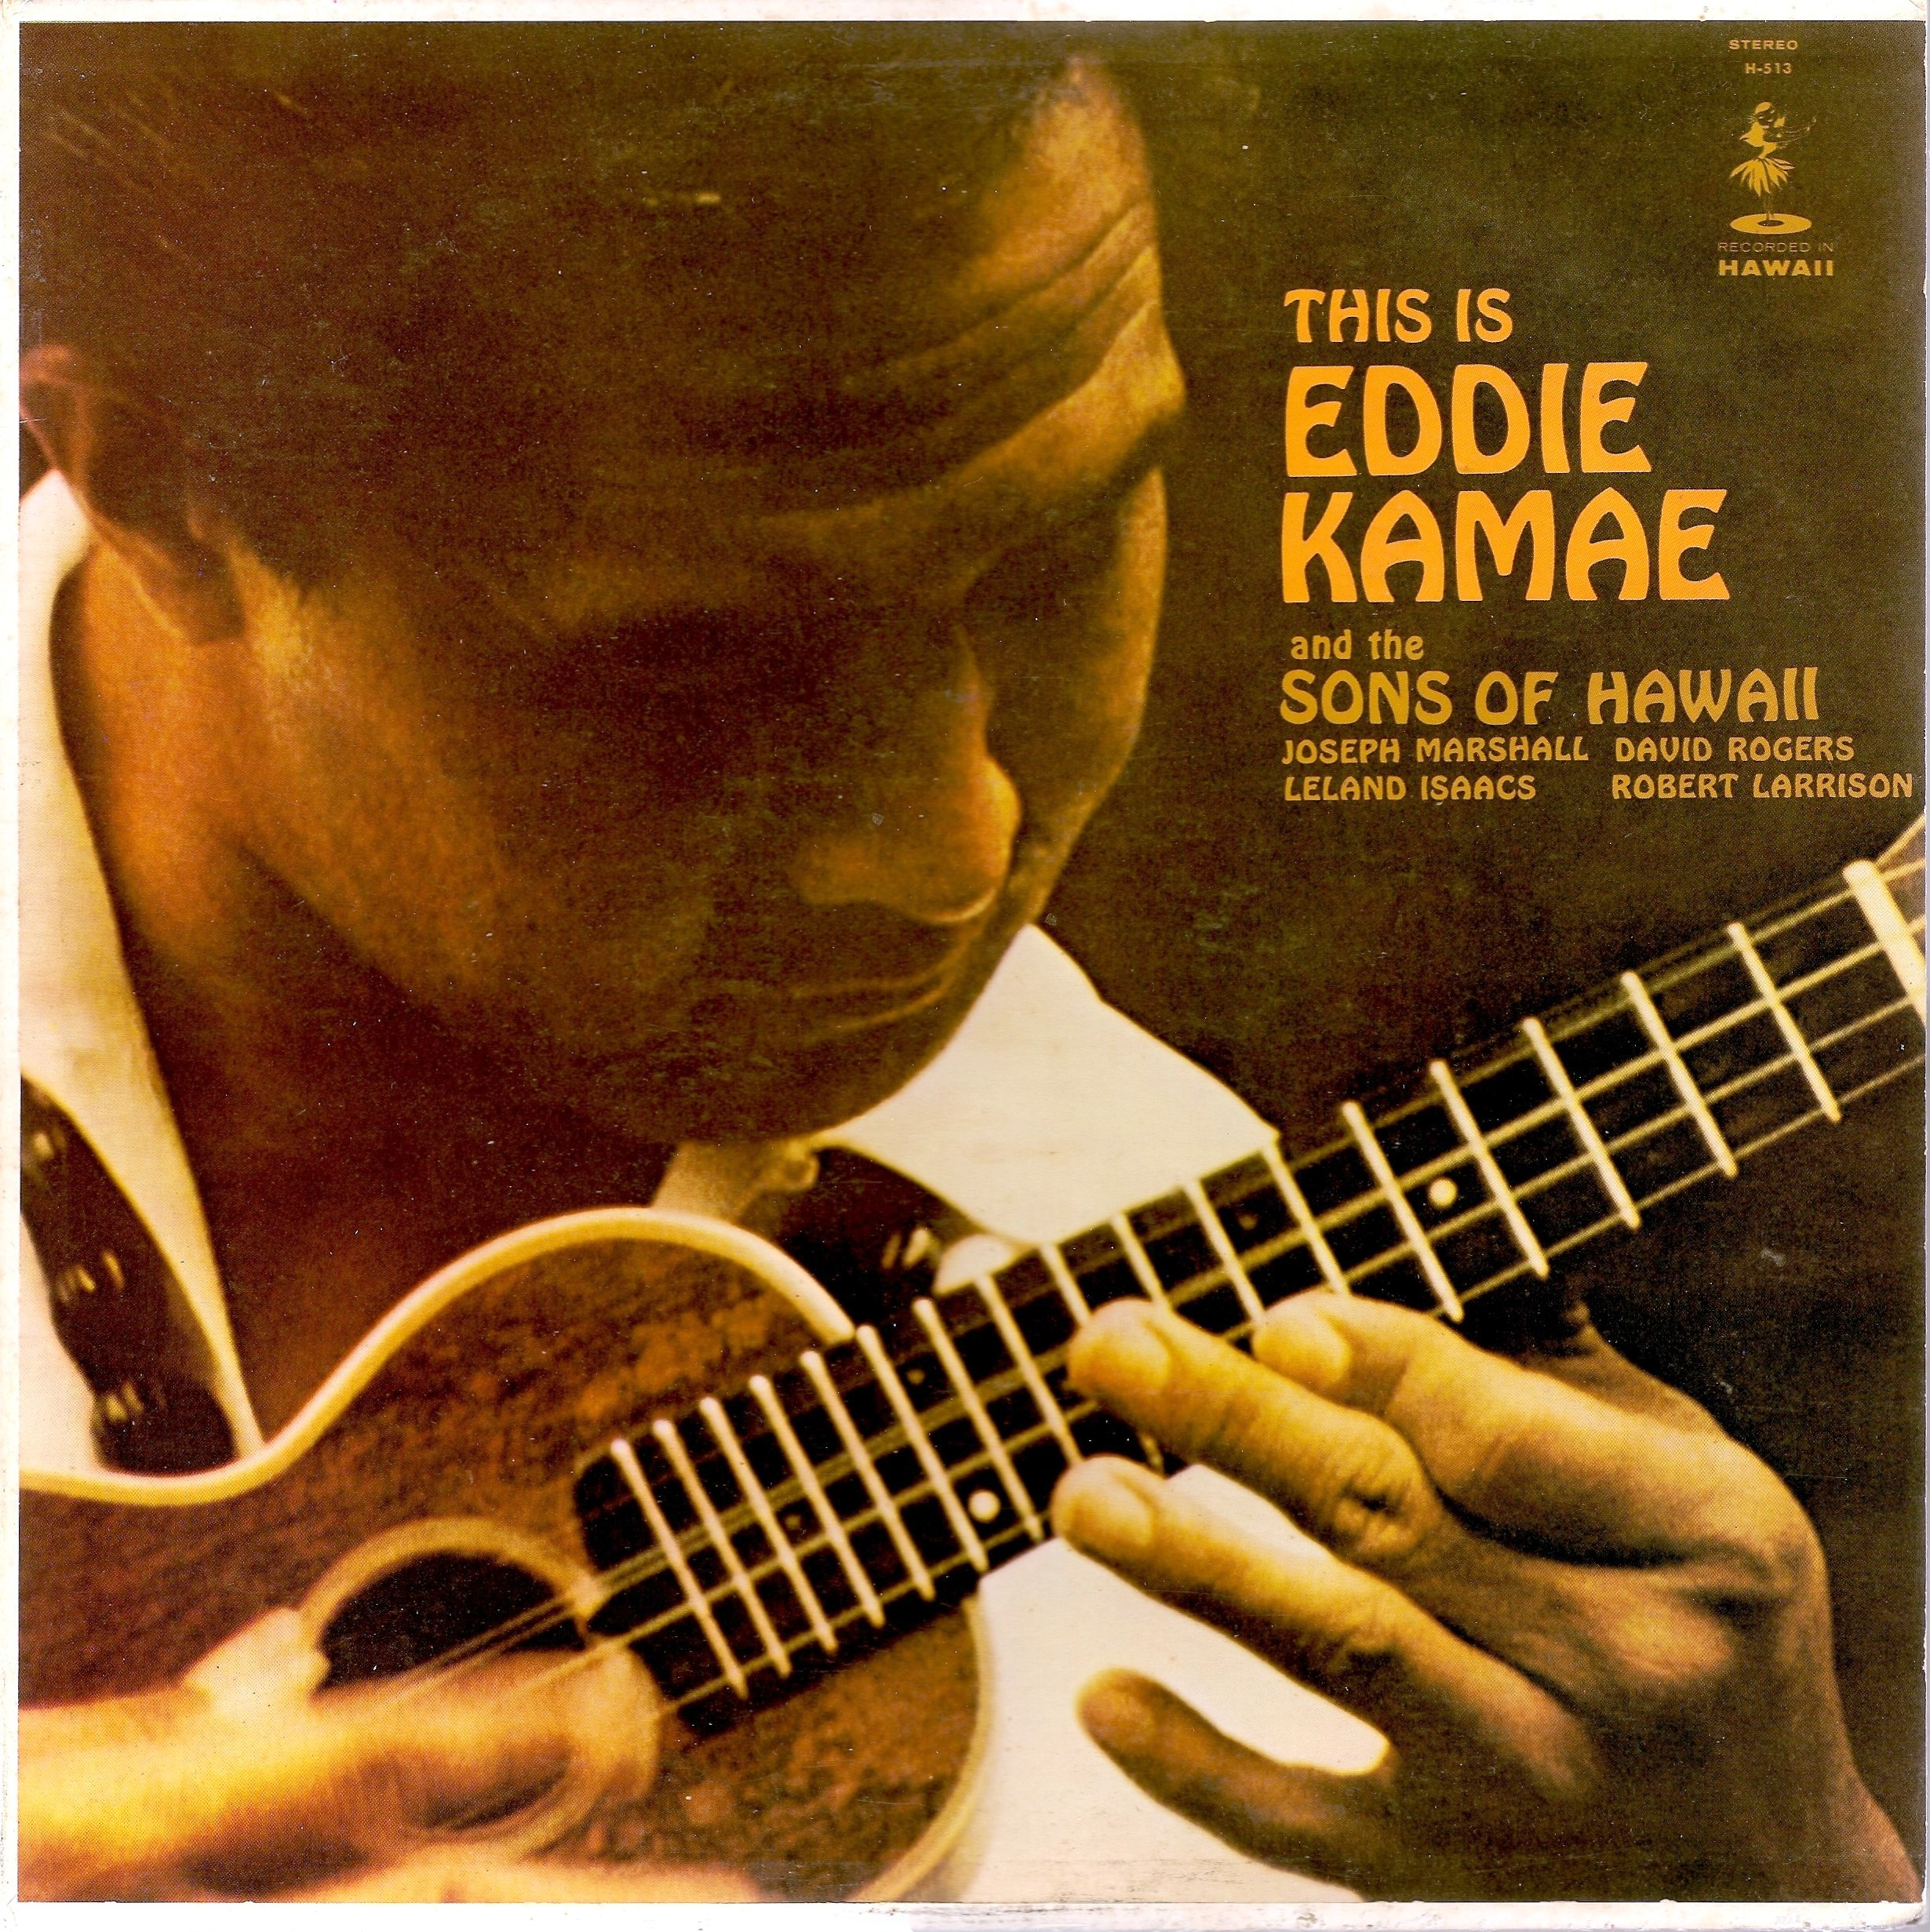 Hall Of Fame: Eddie Kamae